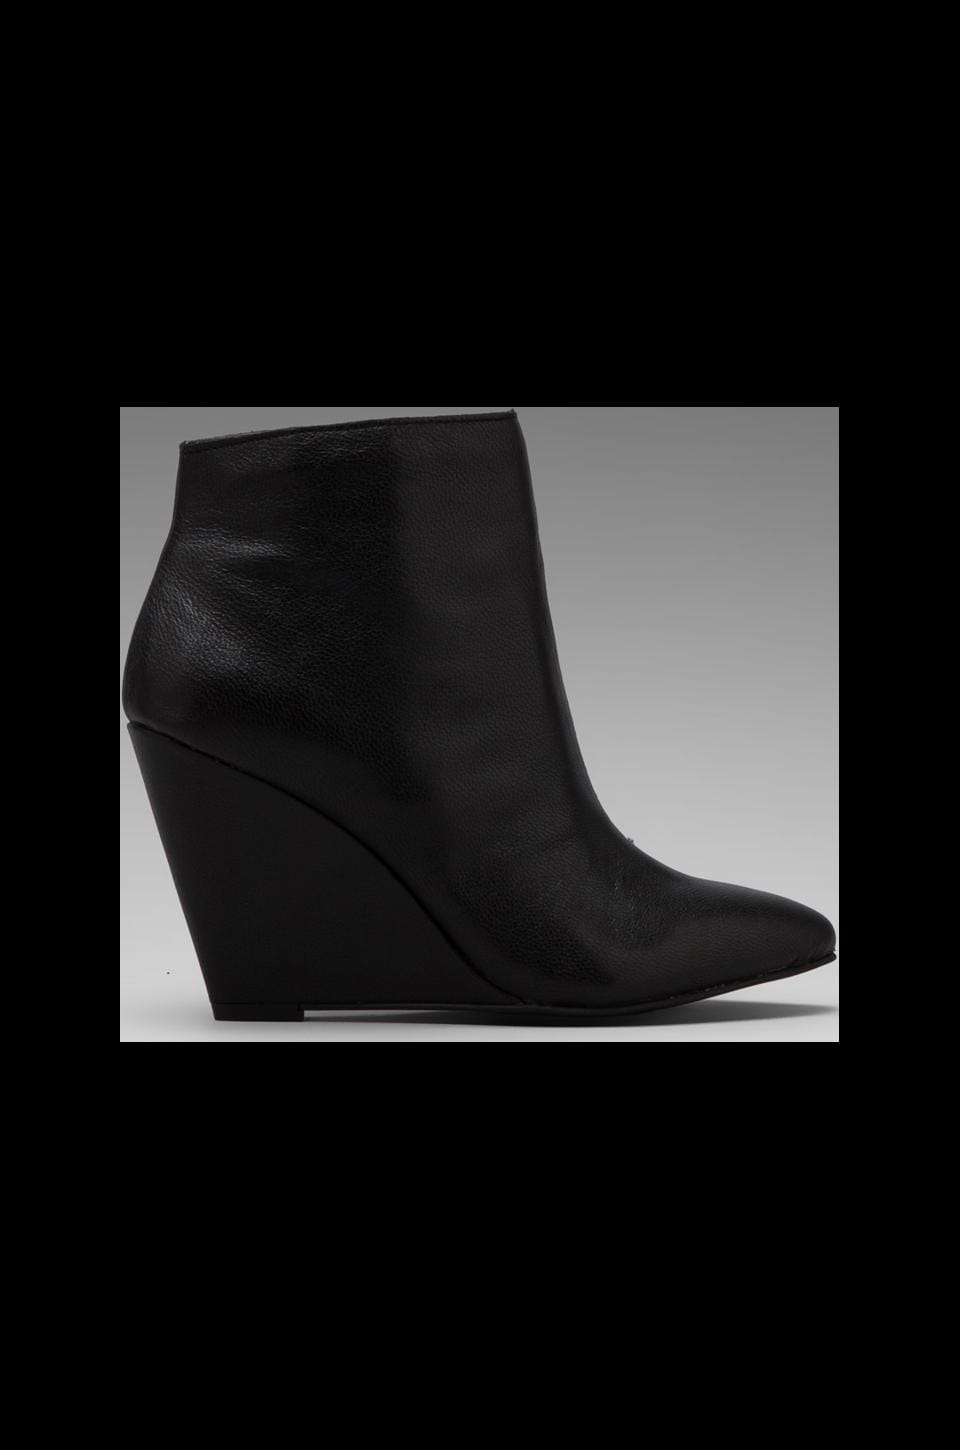 Seychelles Turn Up The Heat Bootie in Black Leather